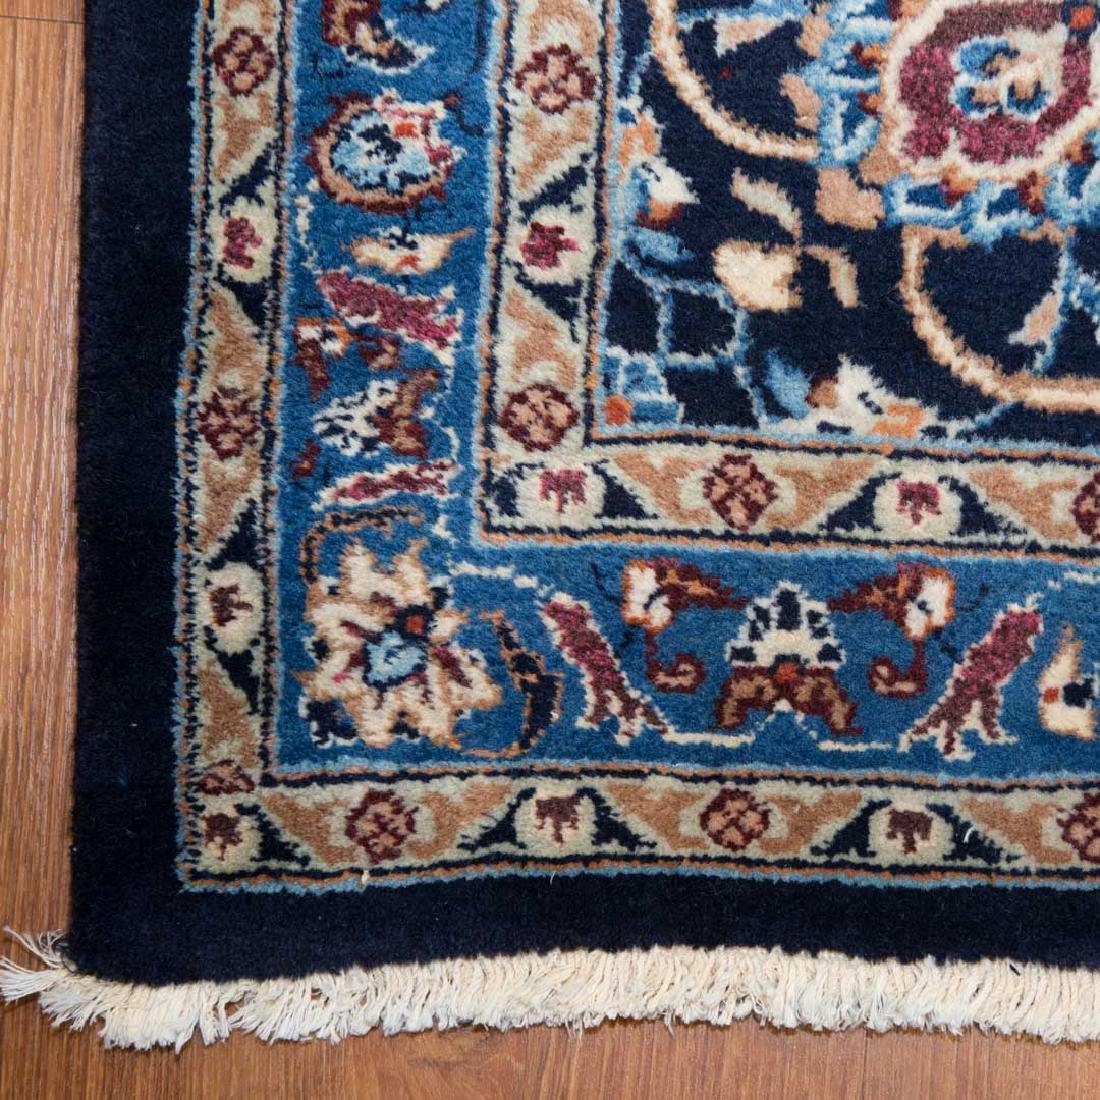 Persian Keshan carpet, approx. 9.8 x 12.3 - 2